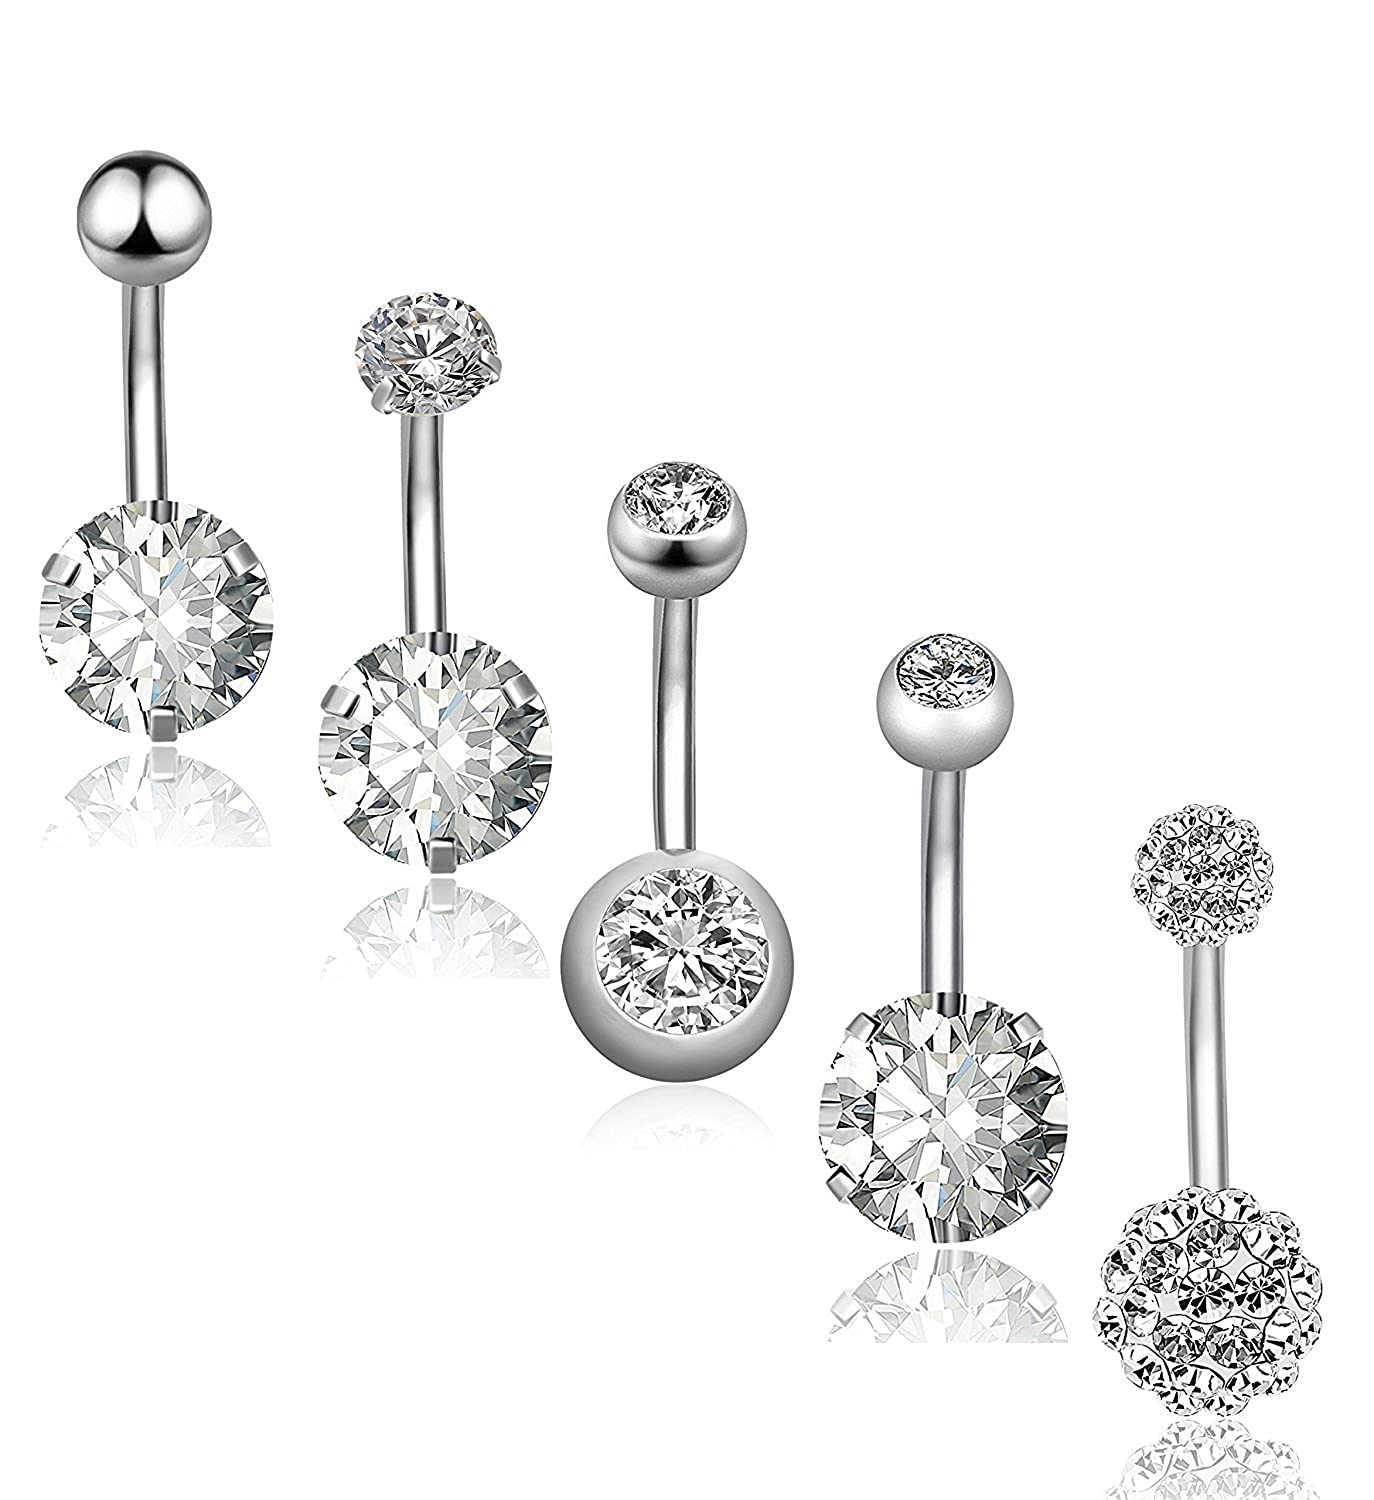 Ghome 5pcs 14g Belly Button Rings Surgical Steel Navel Rings Curved Barbell Body Piercing